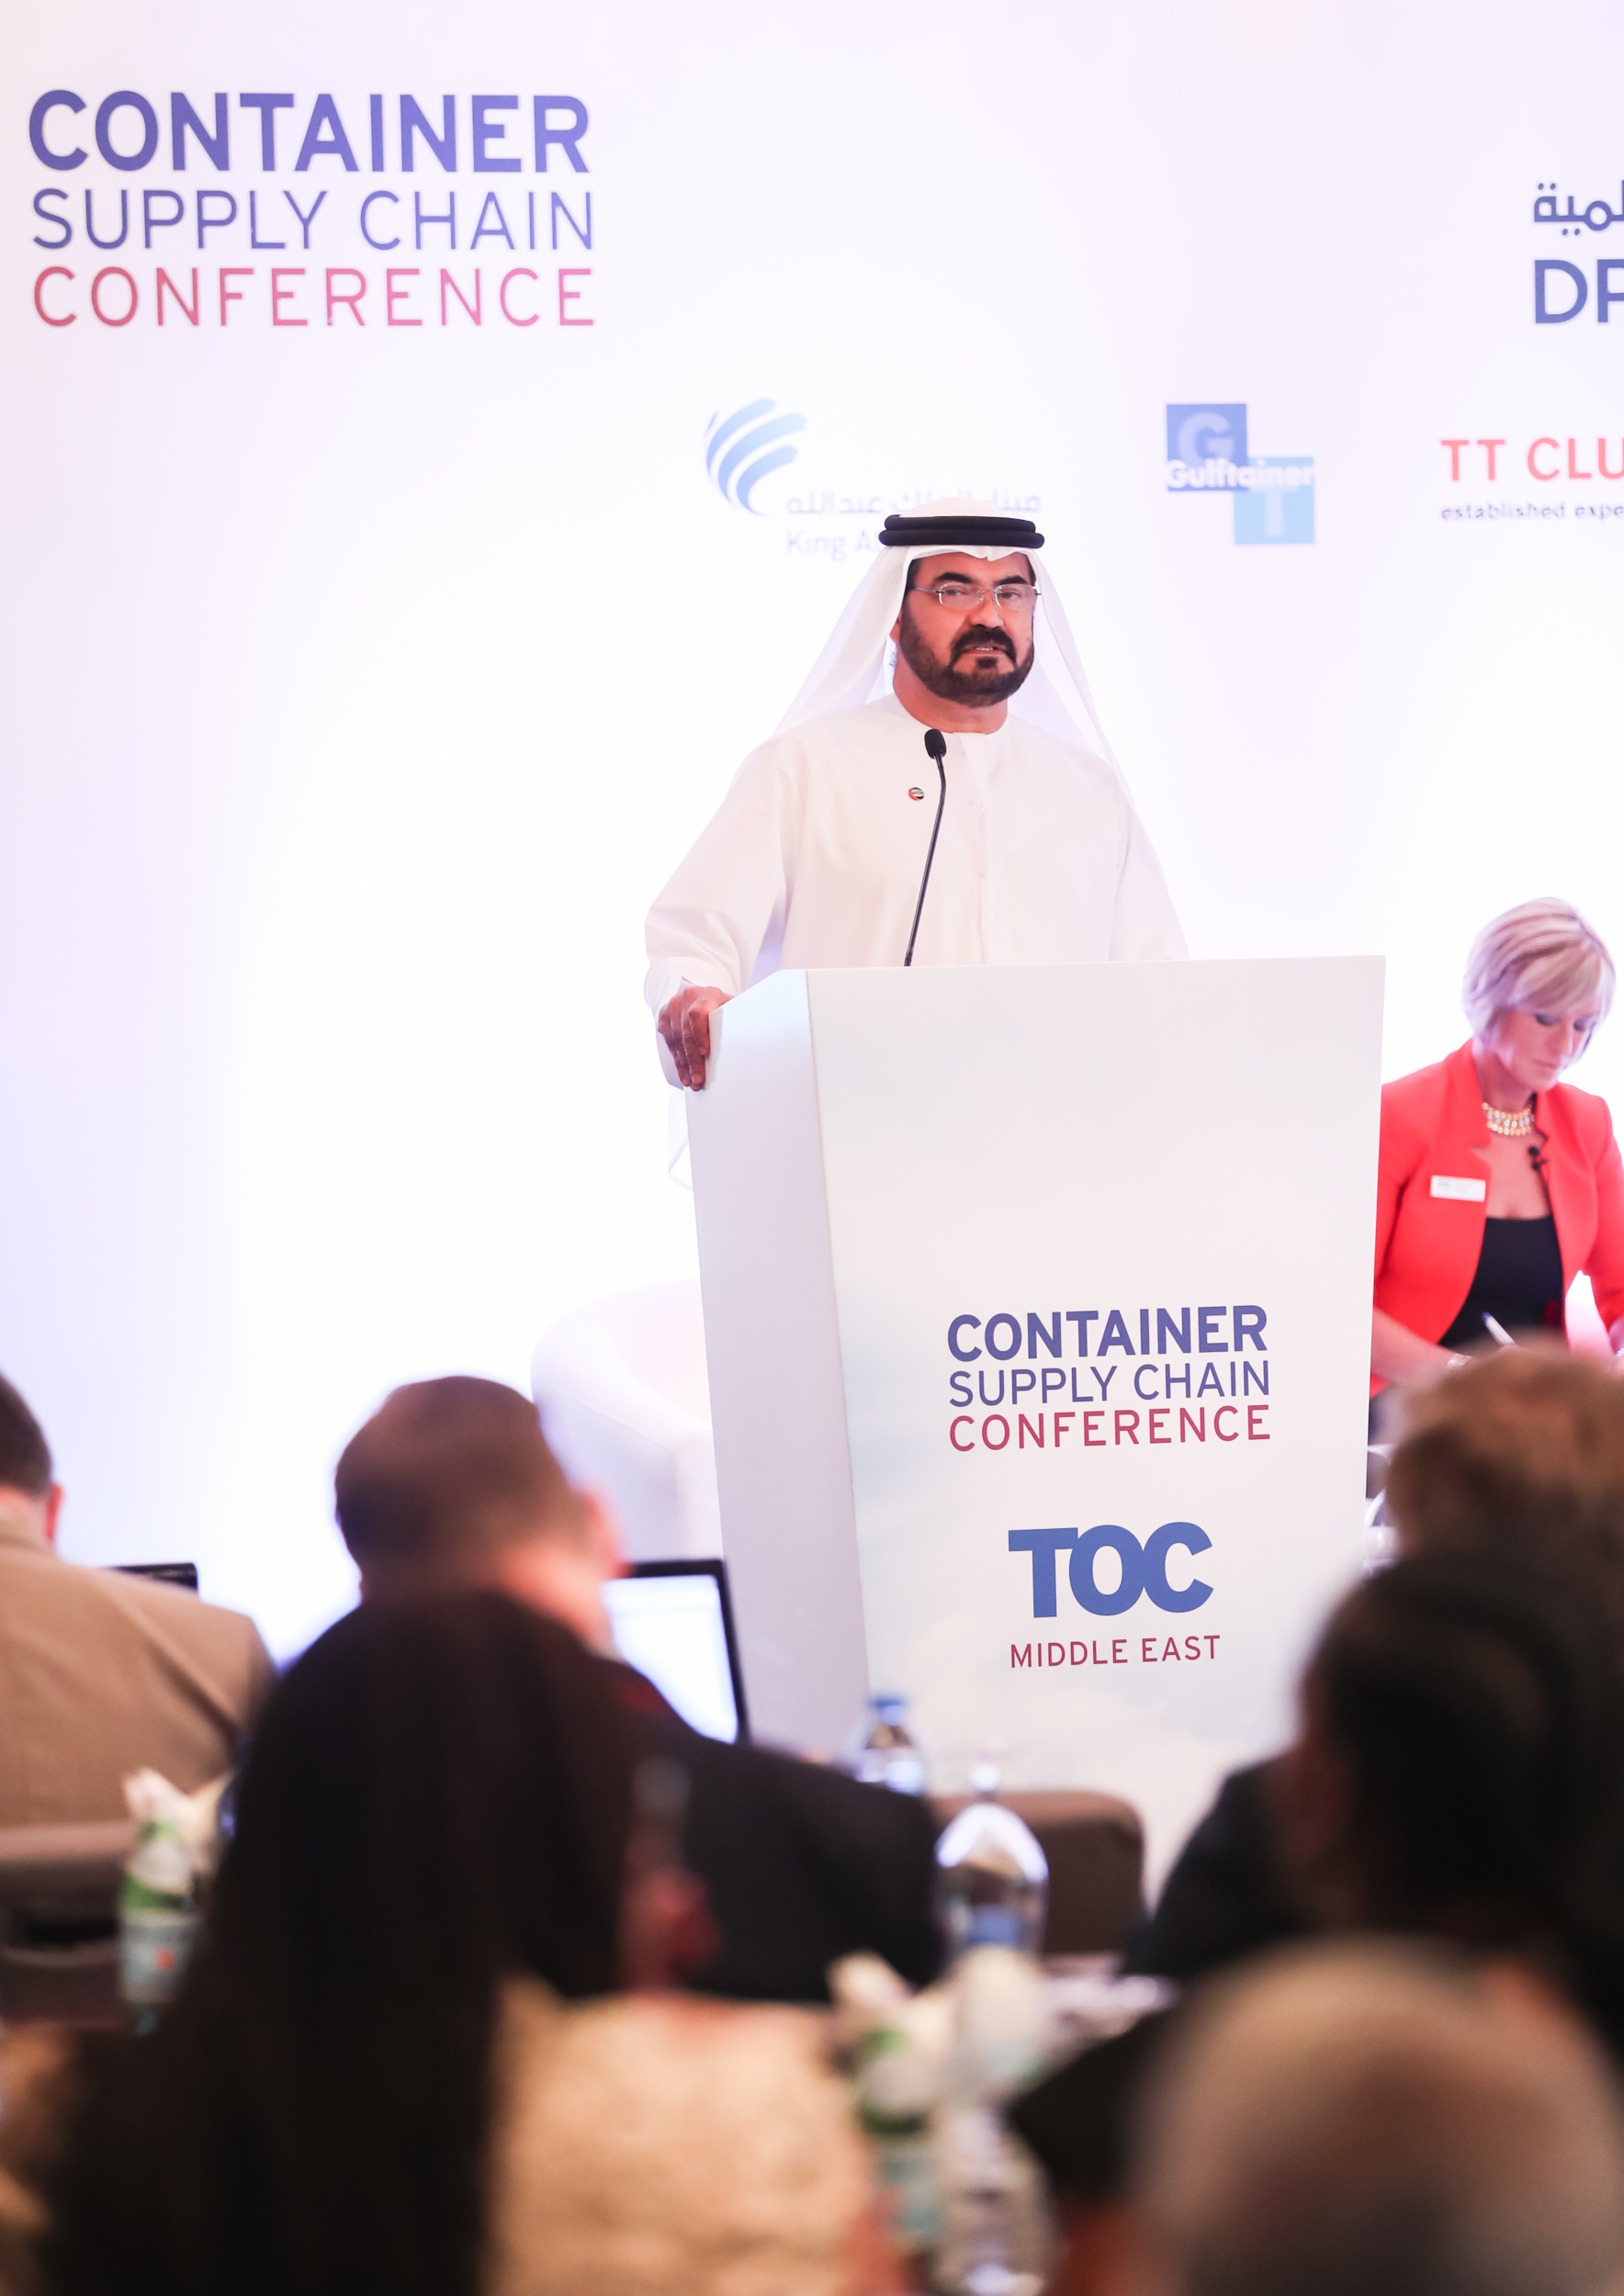 toc middle east conference